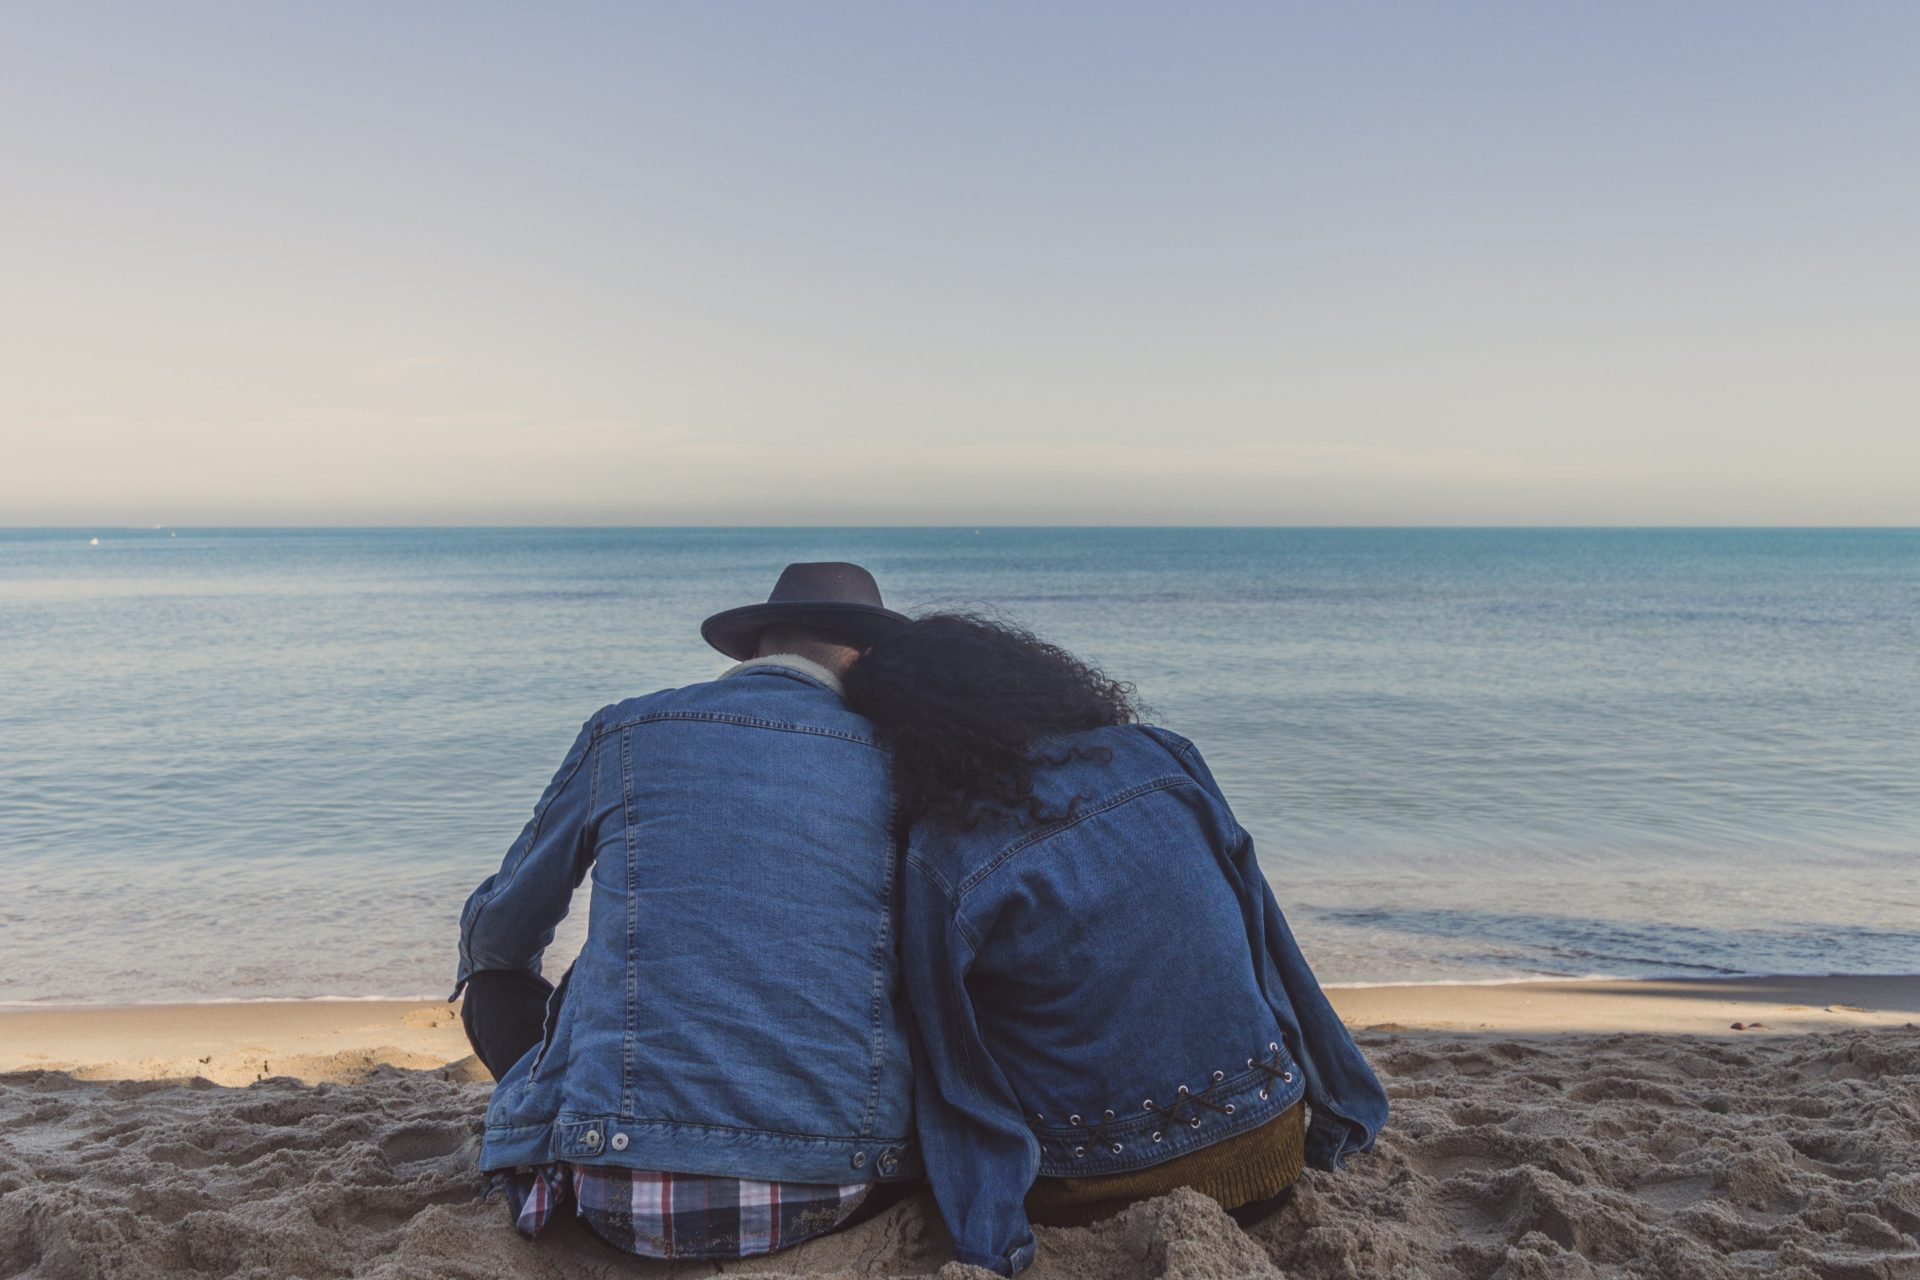 30 Signs He's Too Emotionally Immature For A Serious Relationship